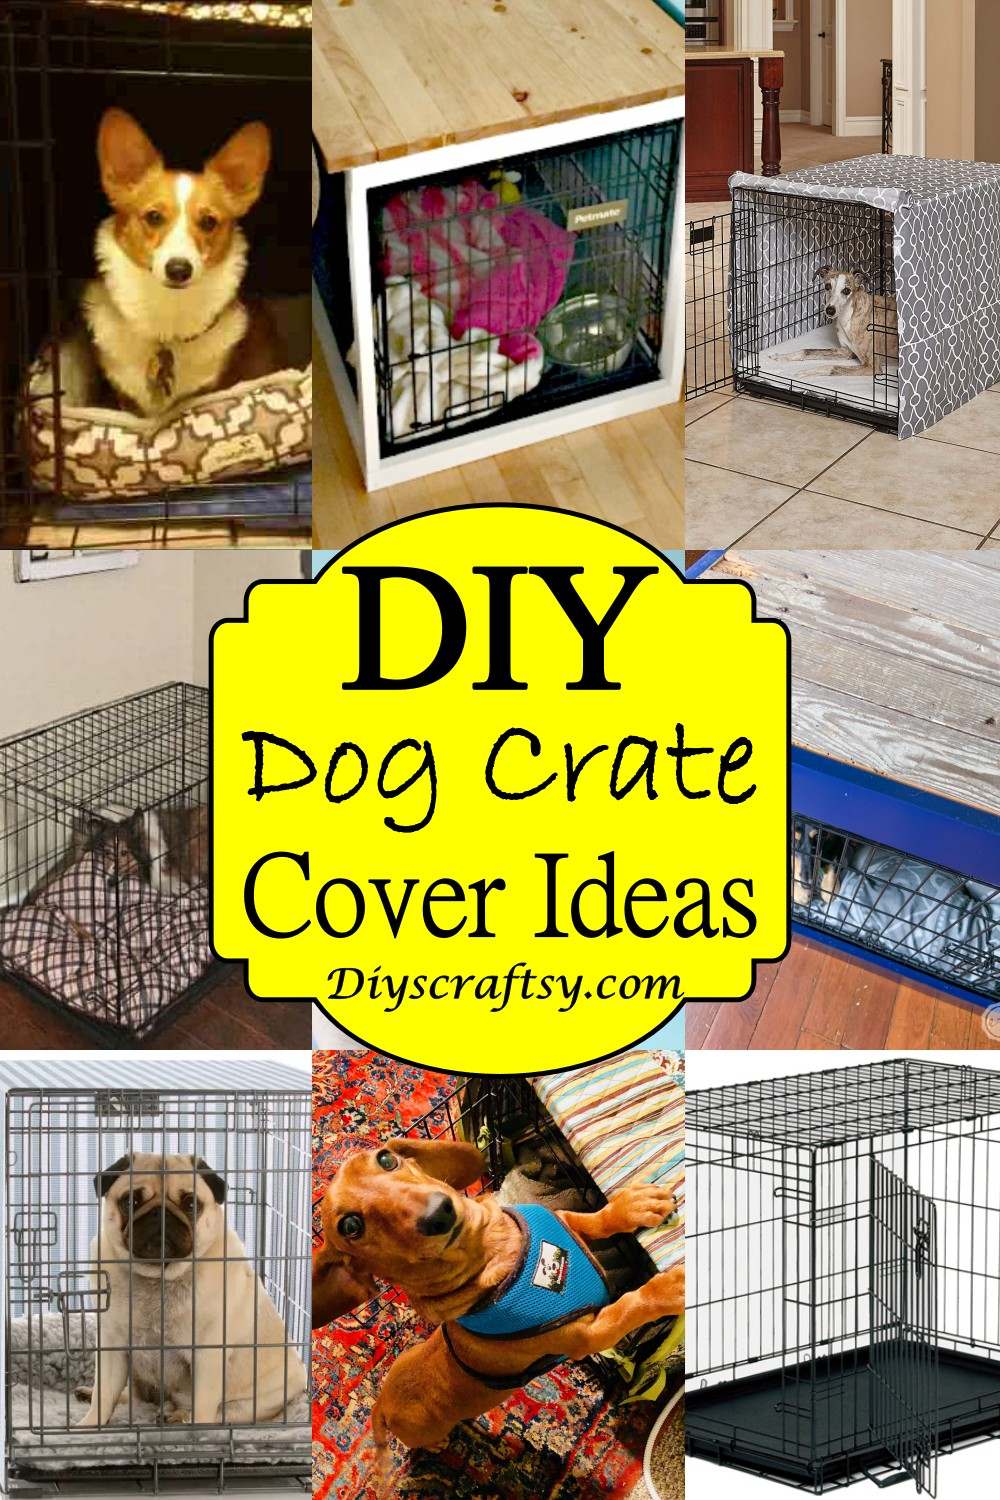 DIY Dog Crate Cover Ideas 1